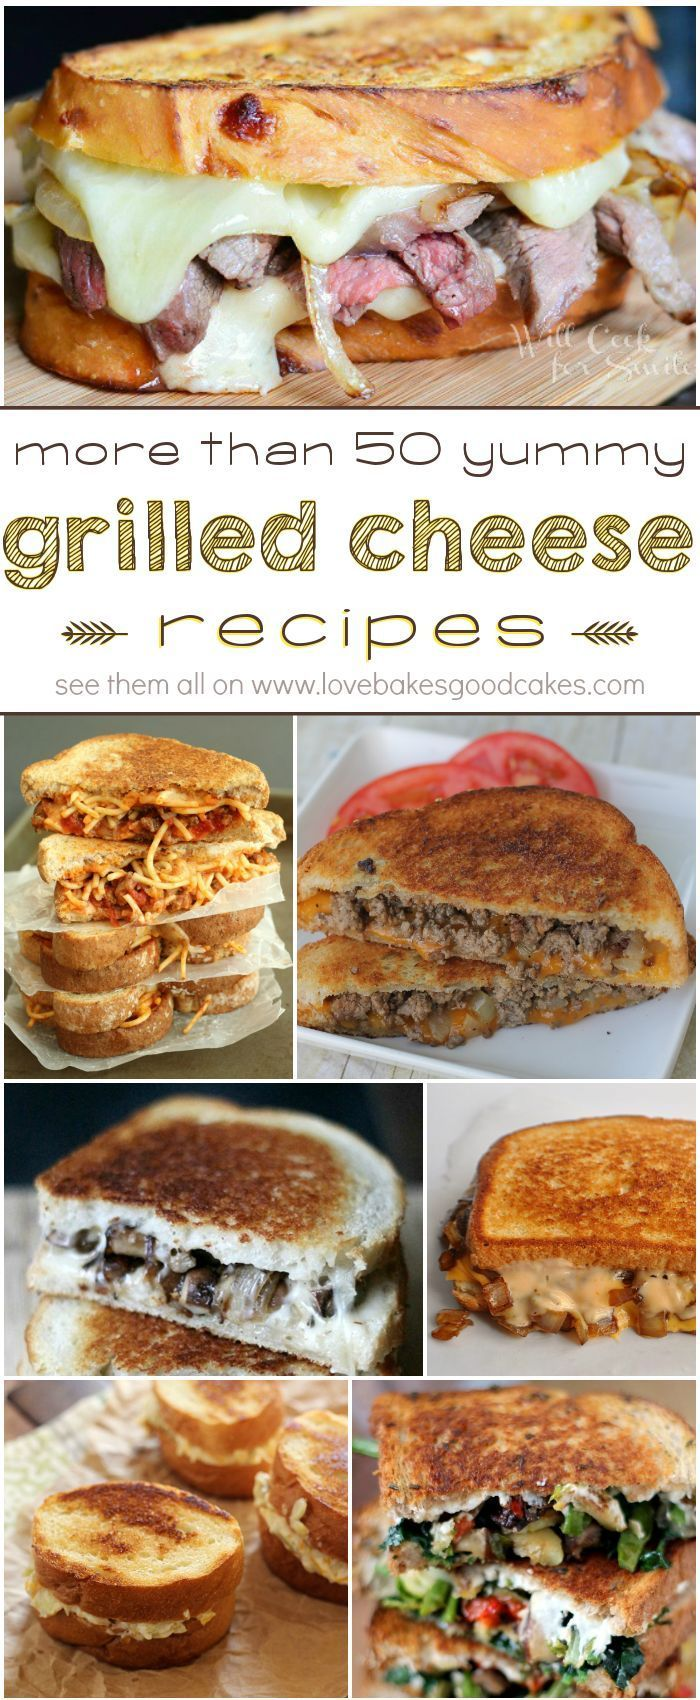 More than 50 yummy Grilled Cheese recipes! Lots of great ideas!